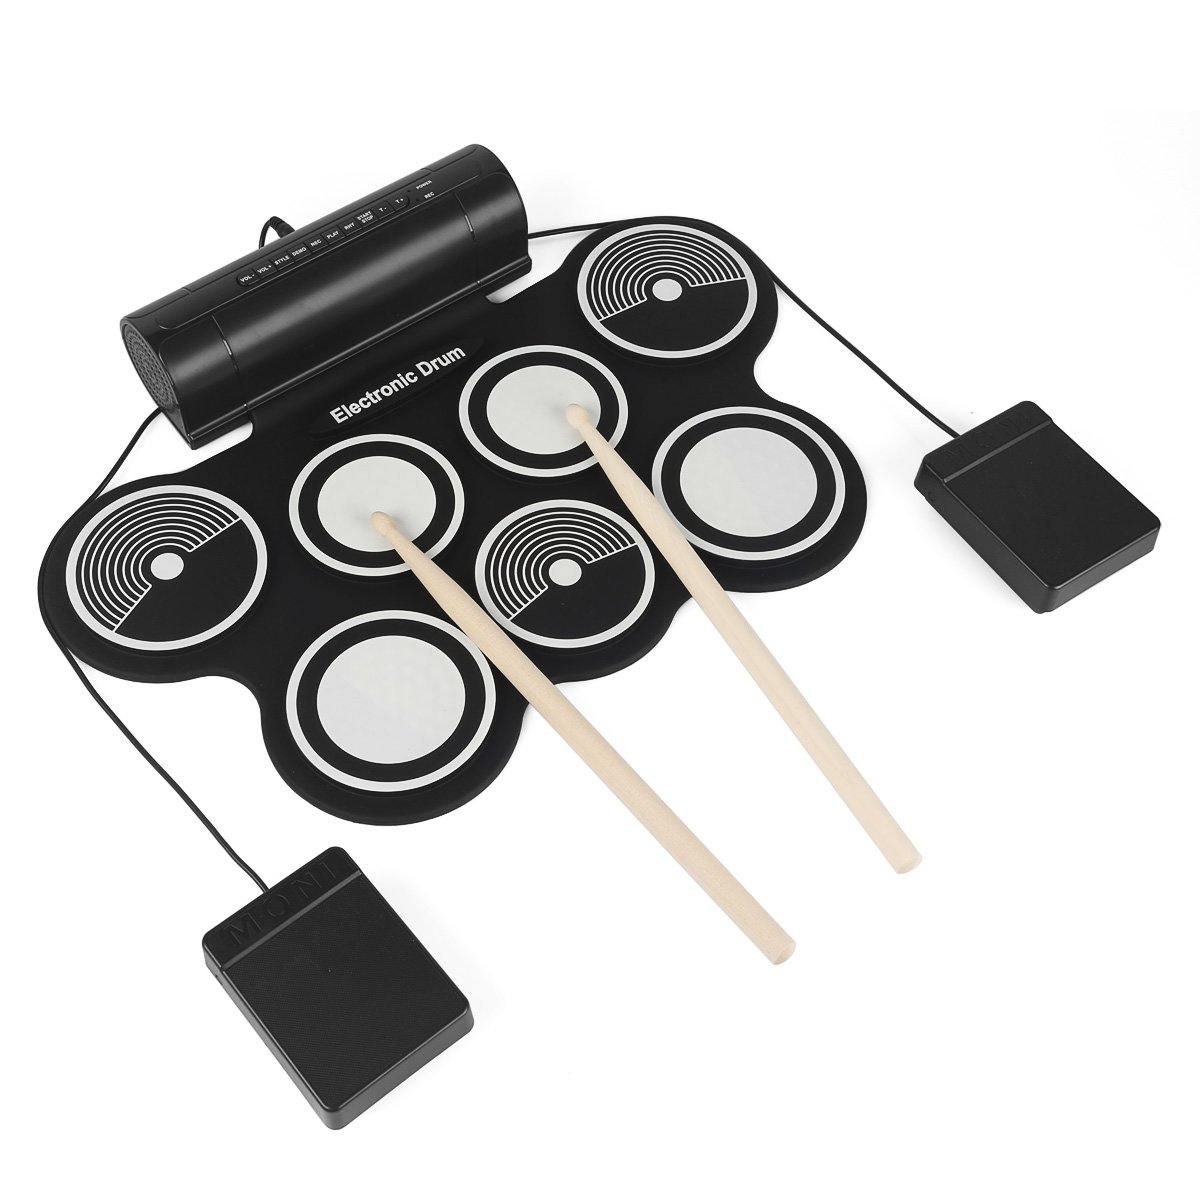 JouerNow MD759 7 Pads Portable Electronic Roll Up Drum Pad Kit SAINSTORE INC